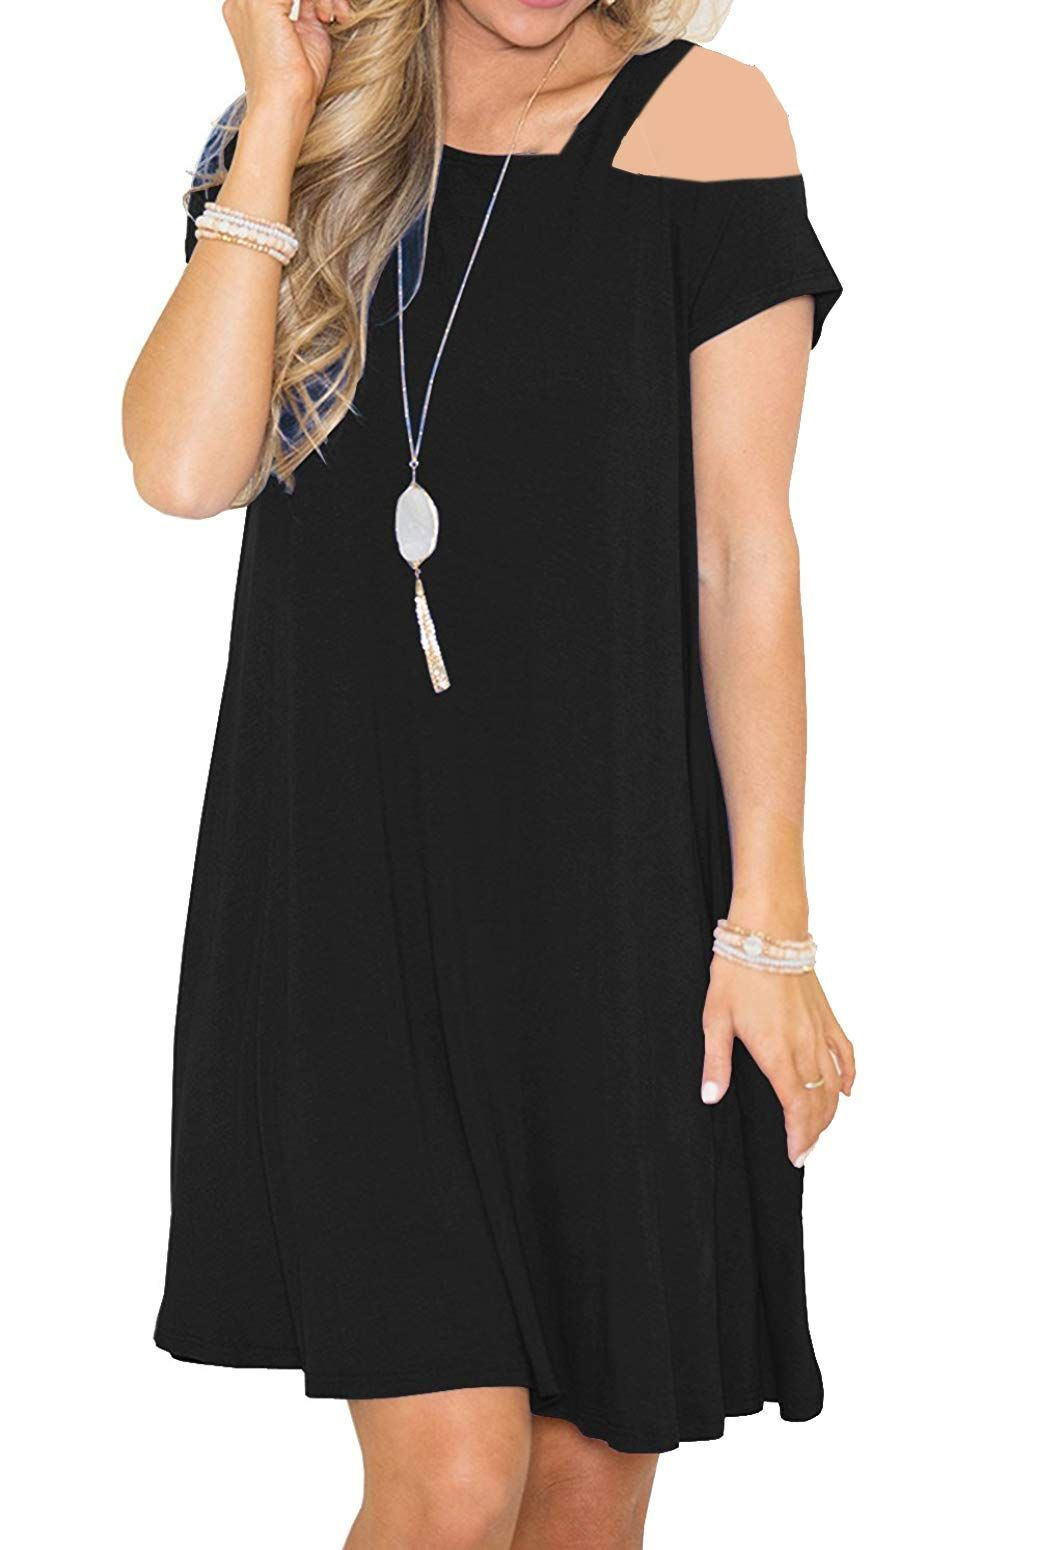 798ee580d7b Anteto Women s Casual Short Sleeve Cold Shoulder Loose Swing T-Shirt Dress  with Pockets Black